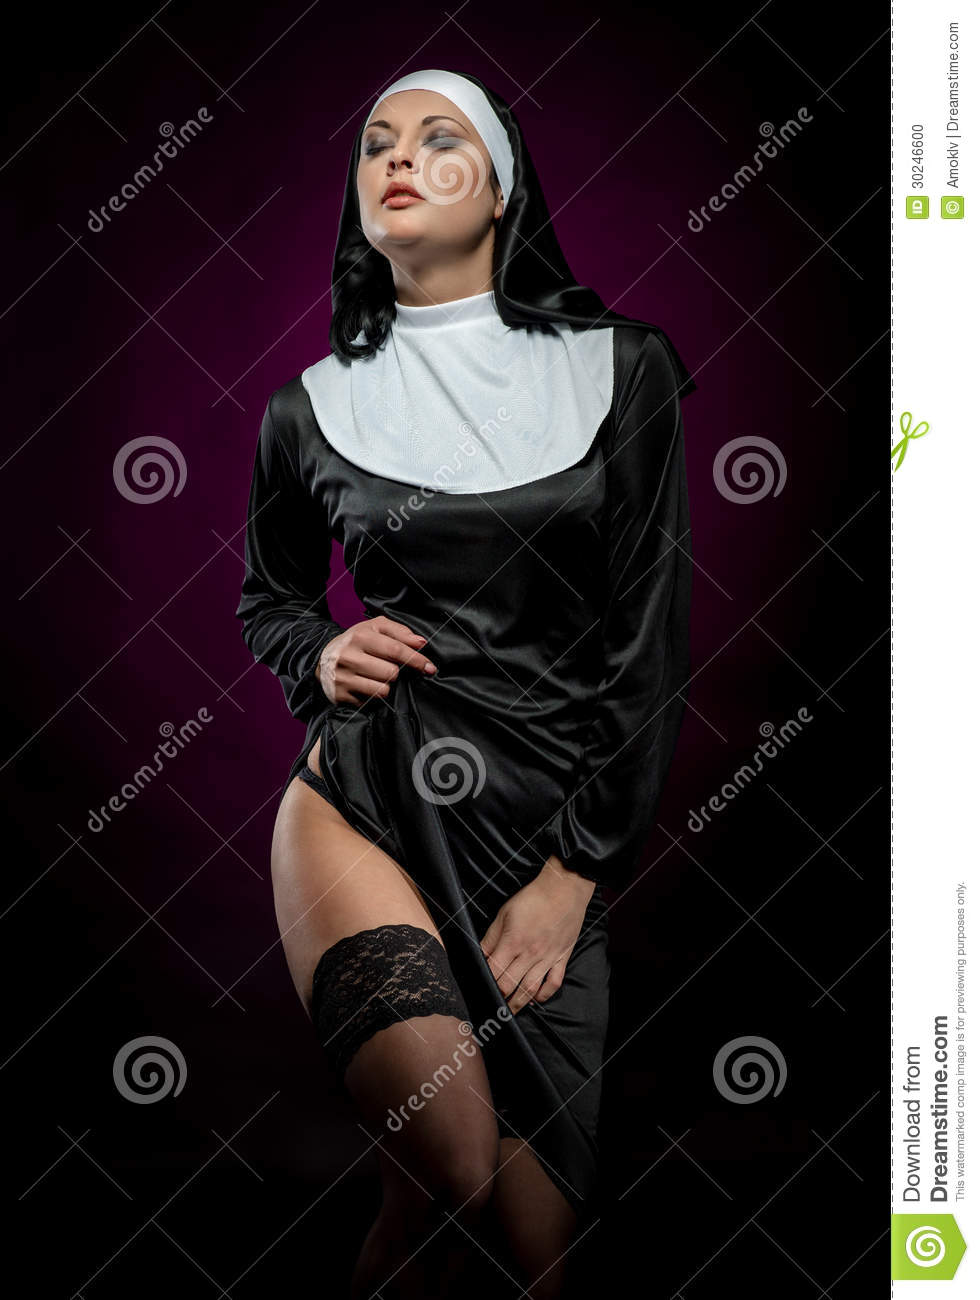 Nun sexuality picture xxx actresses